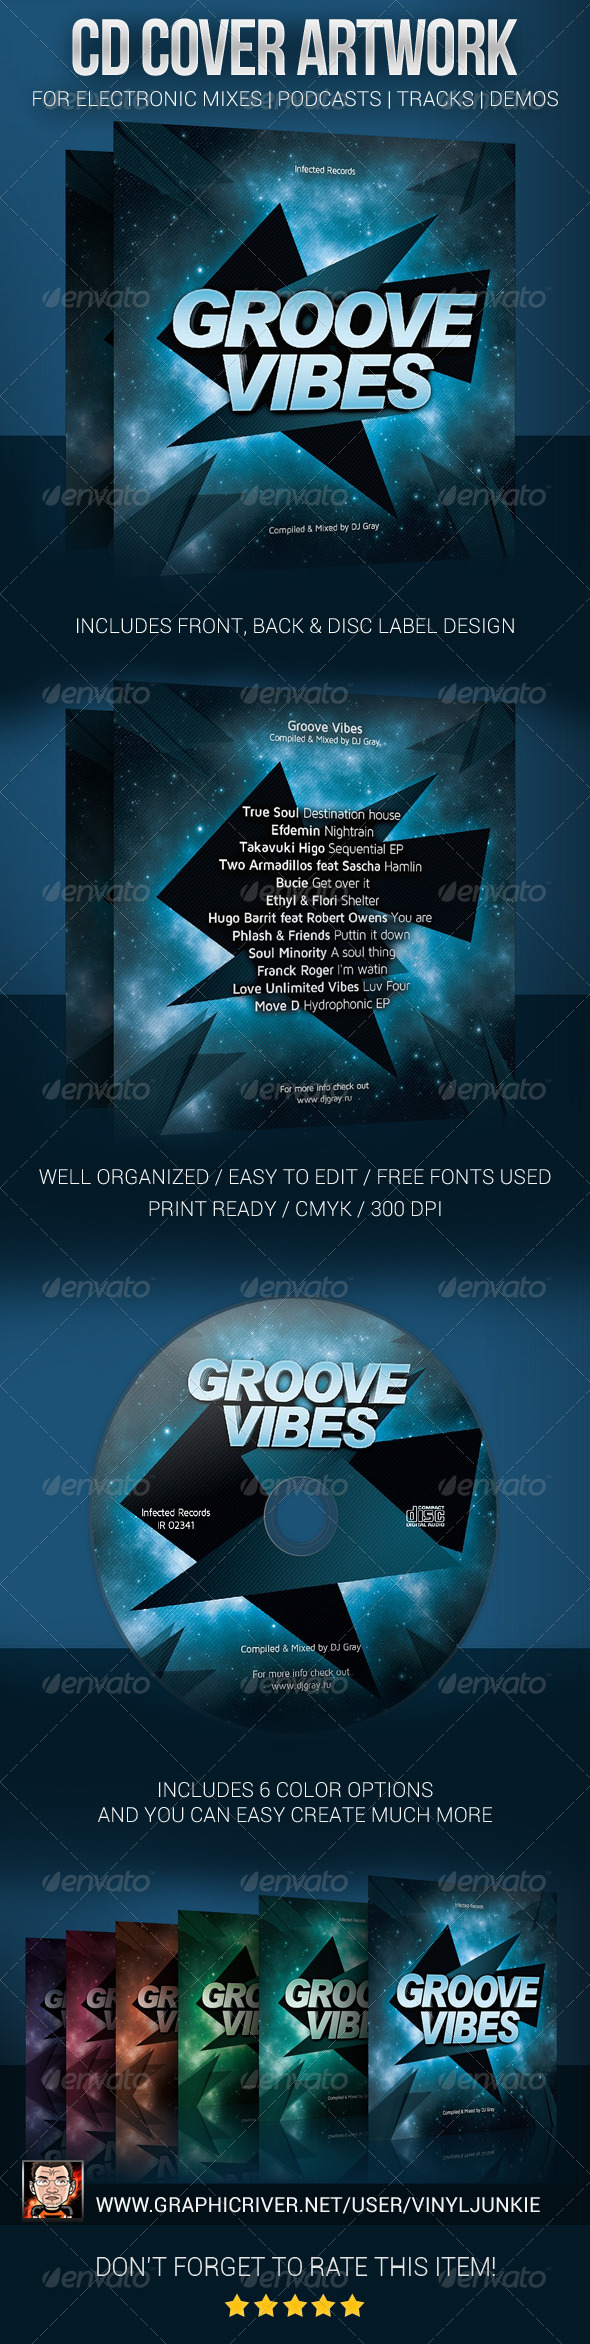 GraphicRiver DJ Mix CD Cover Artwork Template 5840787